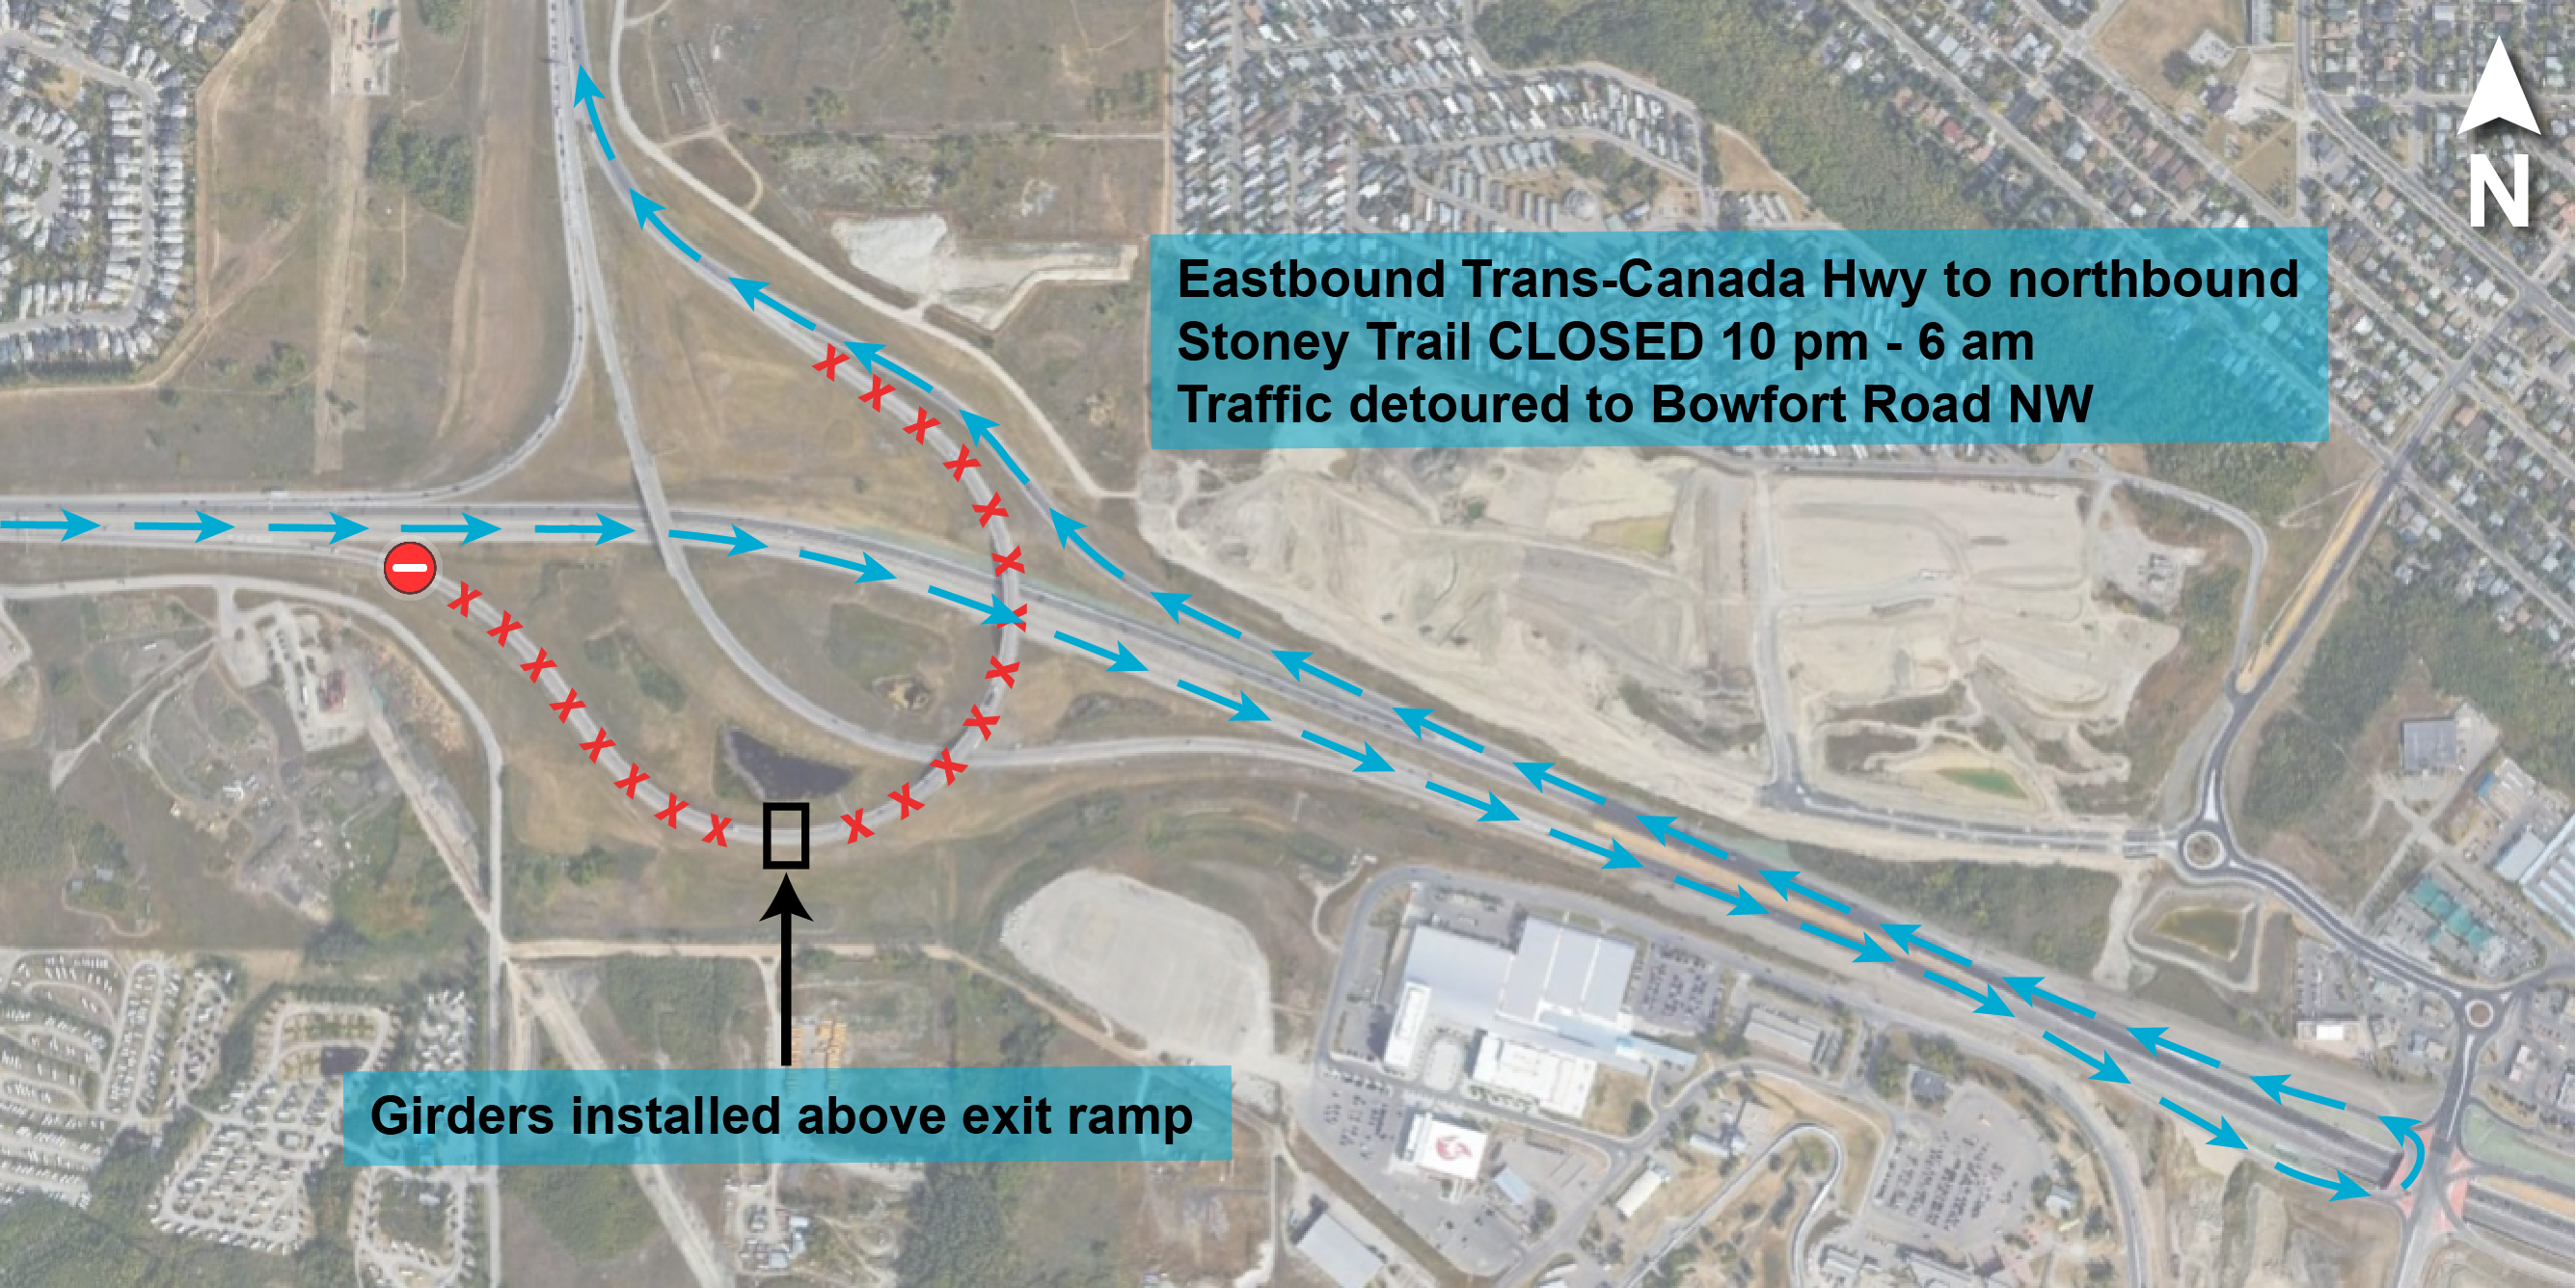 Trans-Canada Highway to Bowfort Road detour map